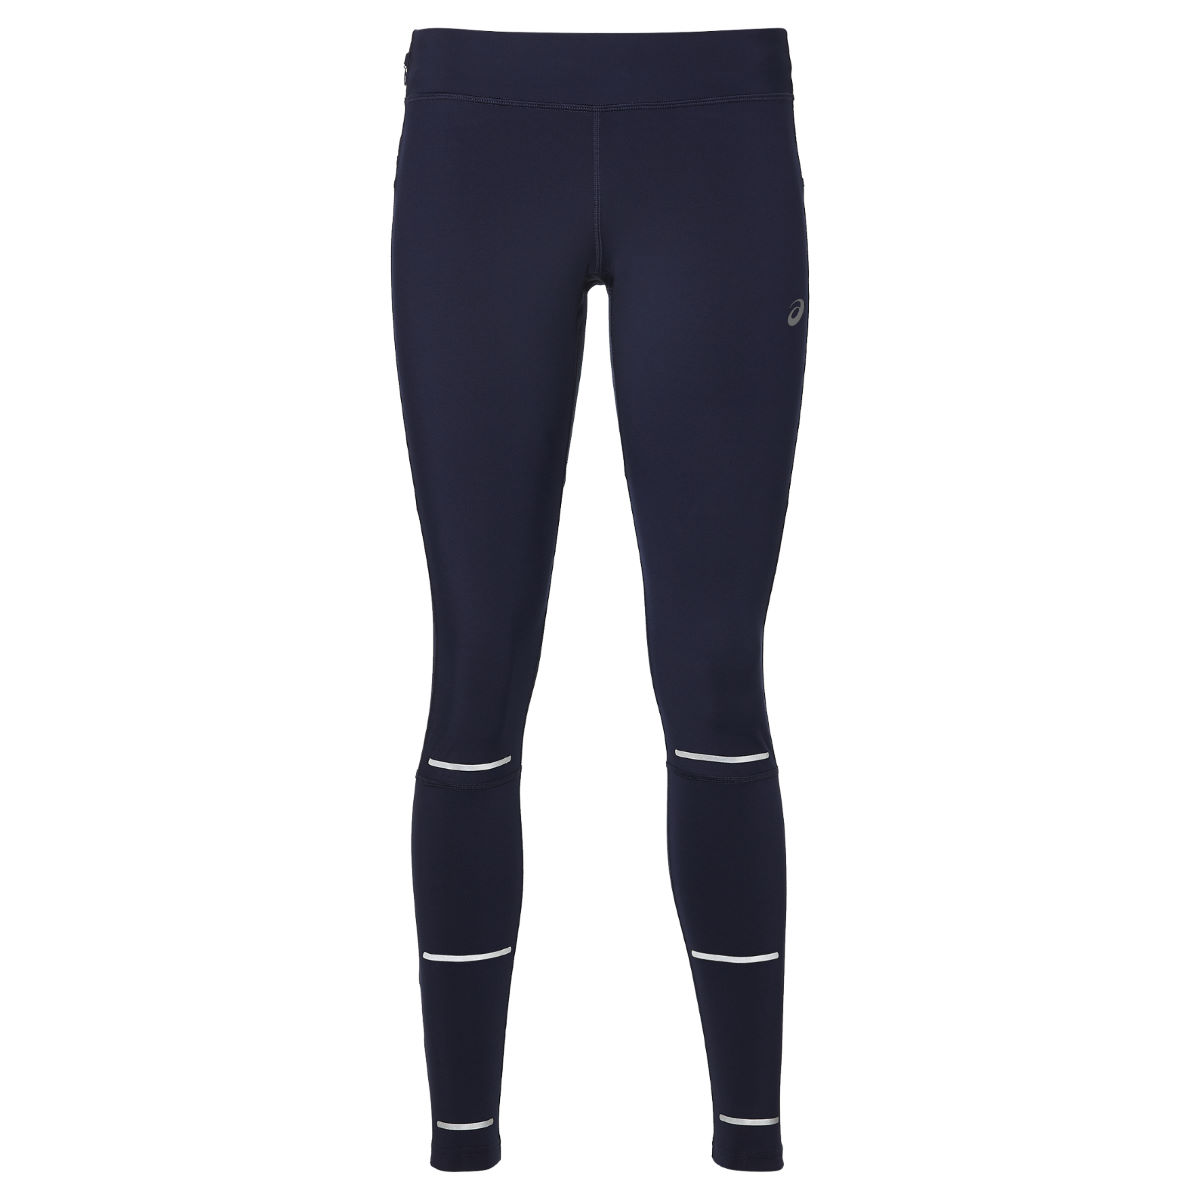 Asics Women's Lite-Show Winter Tight - Mallas